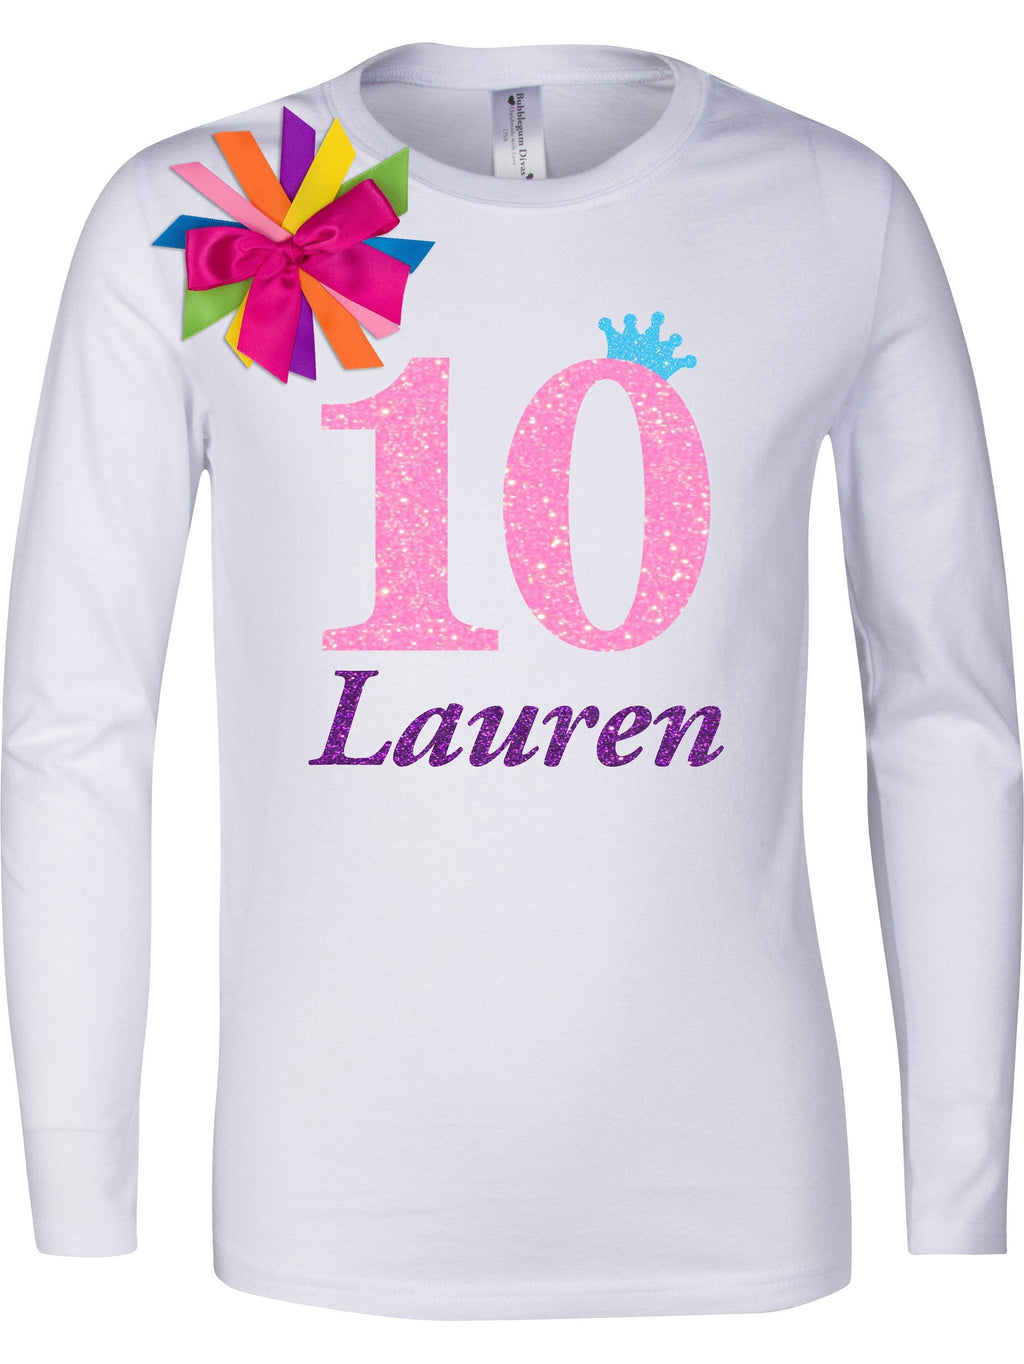 10th Birthday Shirt Tween Girl Outfit Glow Party Neon Pink Sparkle 10 Rainbow Tutu Skirt Personalized